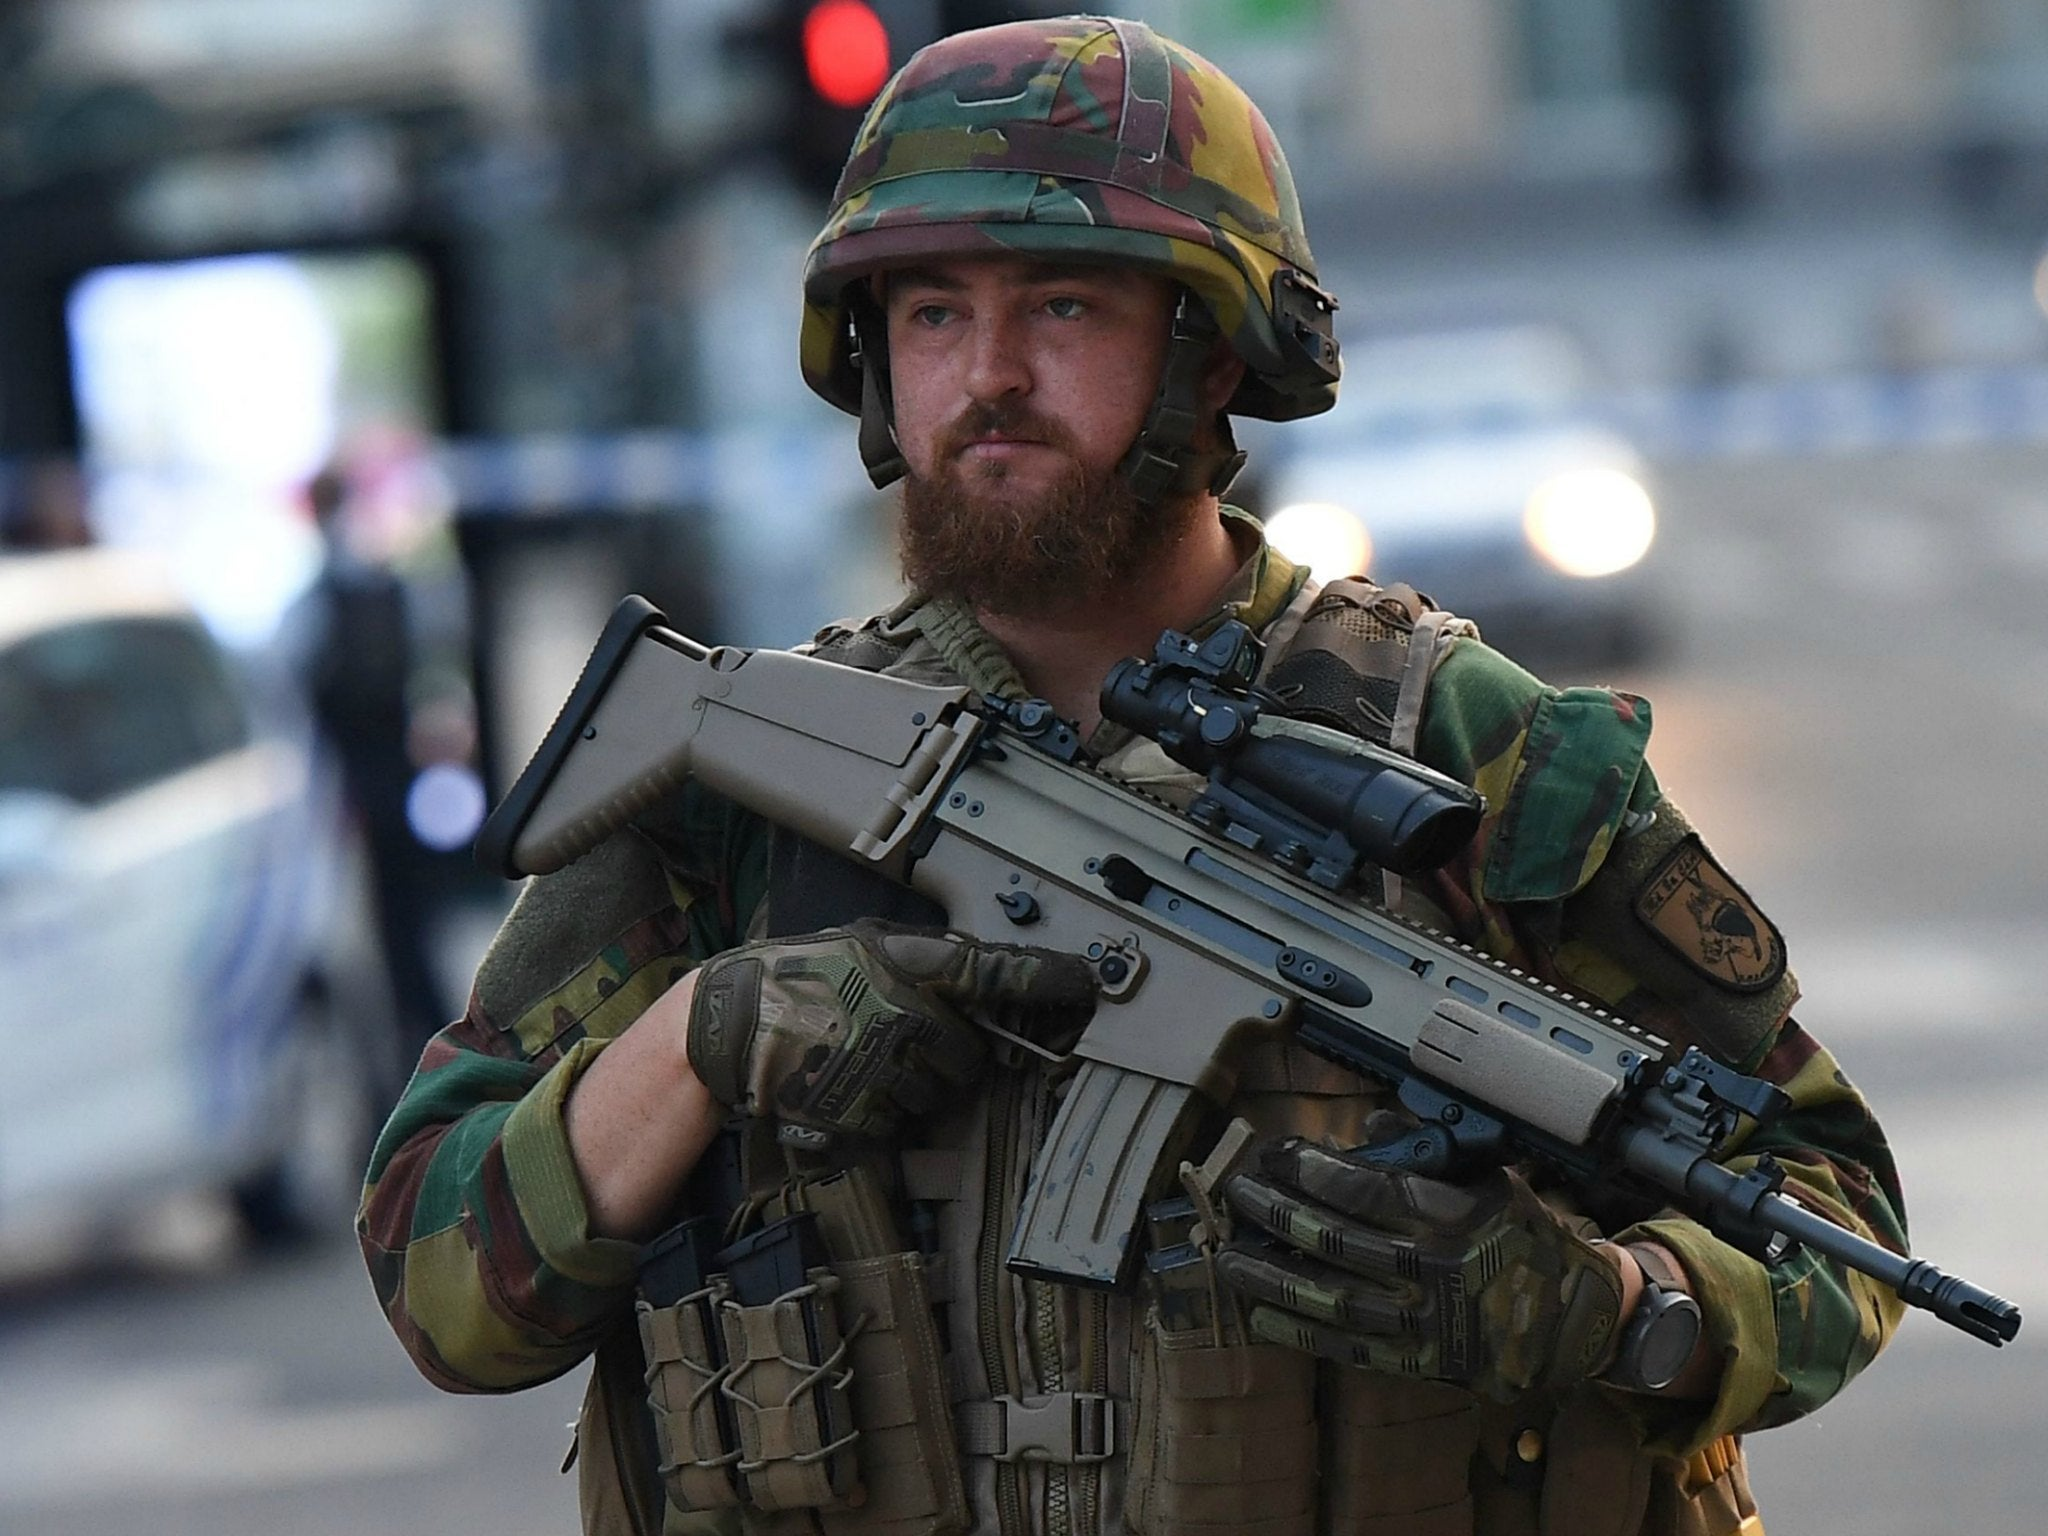 Army color casing ceremony script - Brussels Explosion Suspected Suicide Bomber Shot Dead After Blast At Central Station The Independent